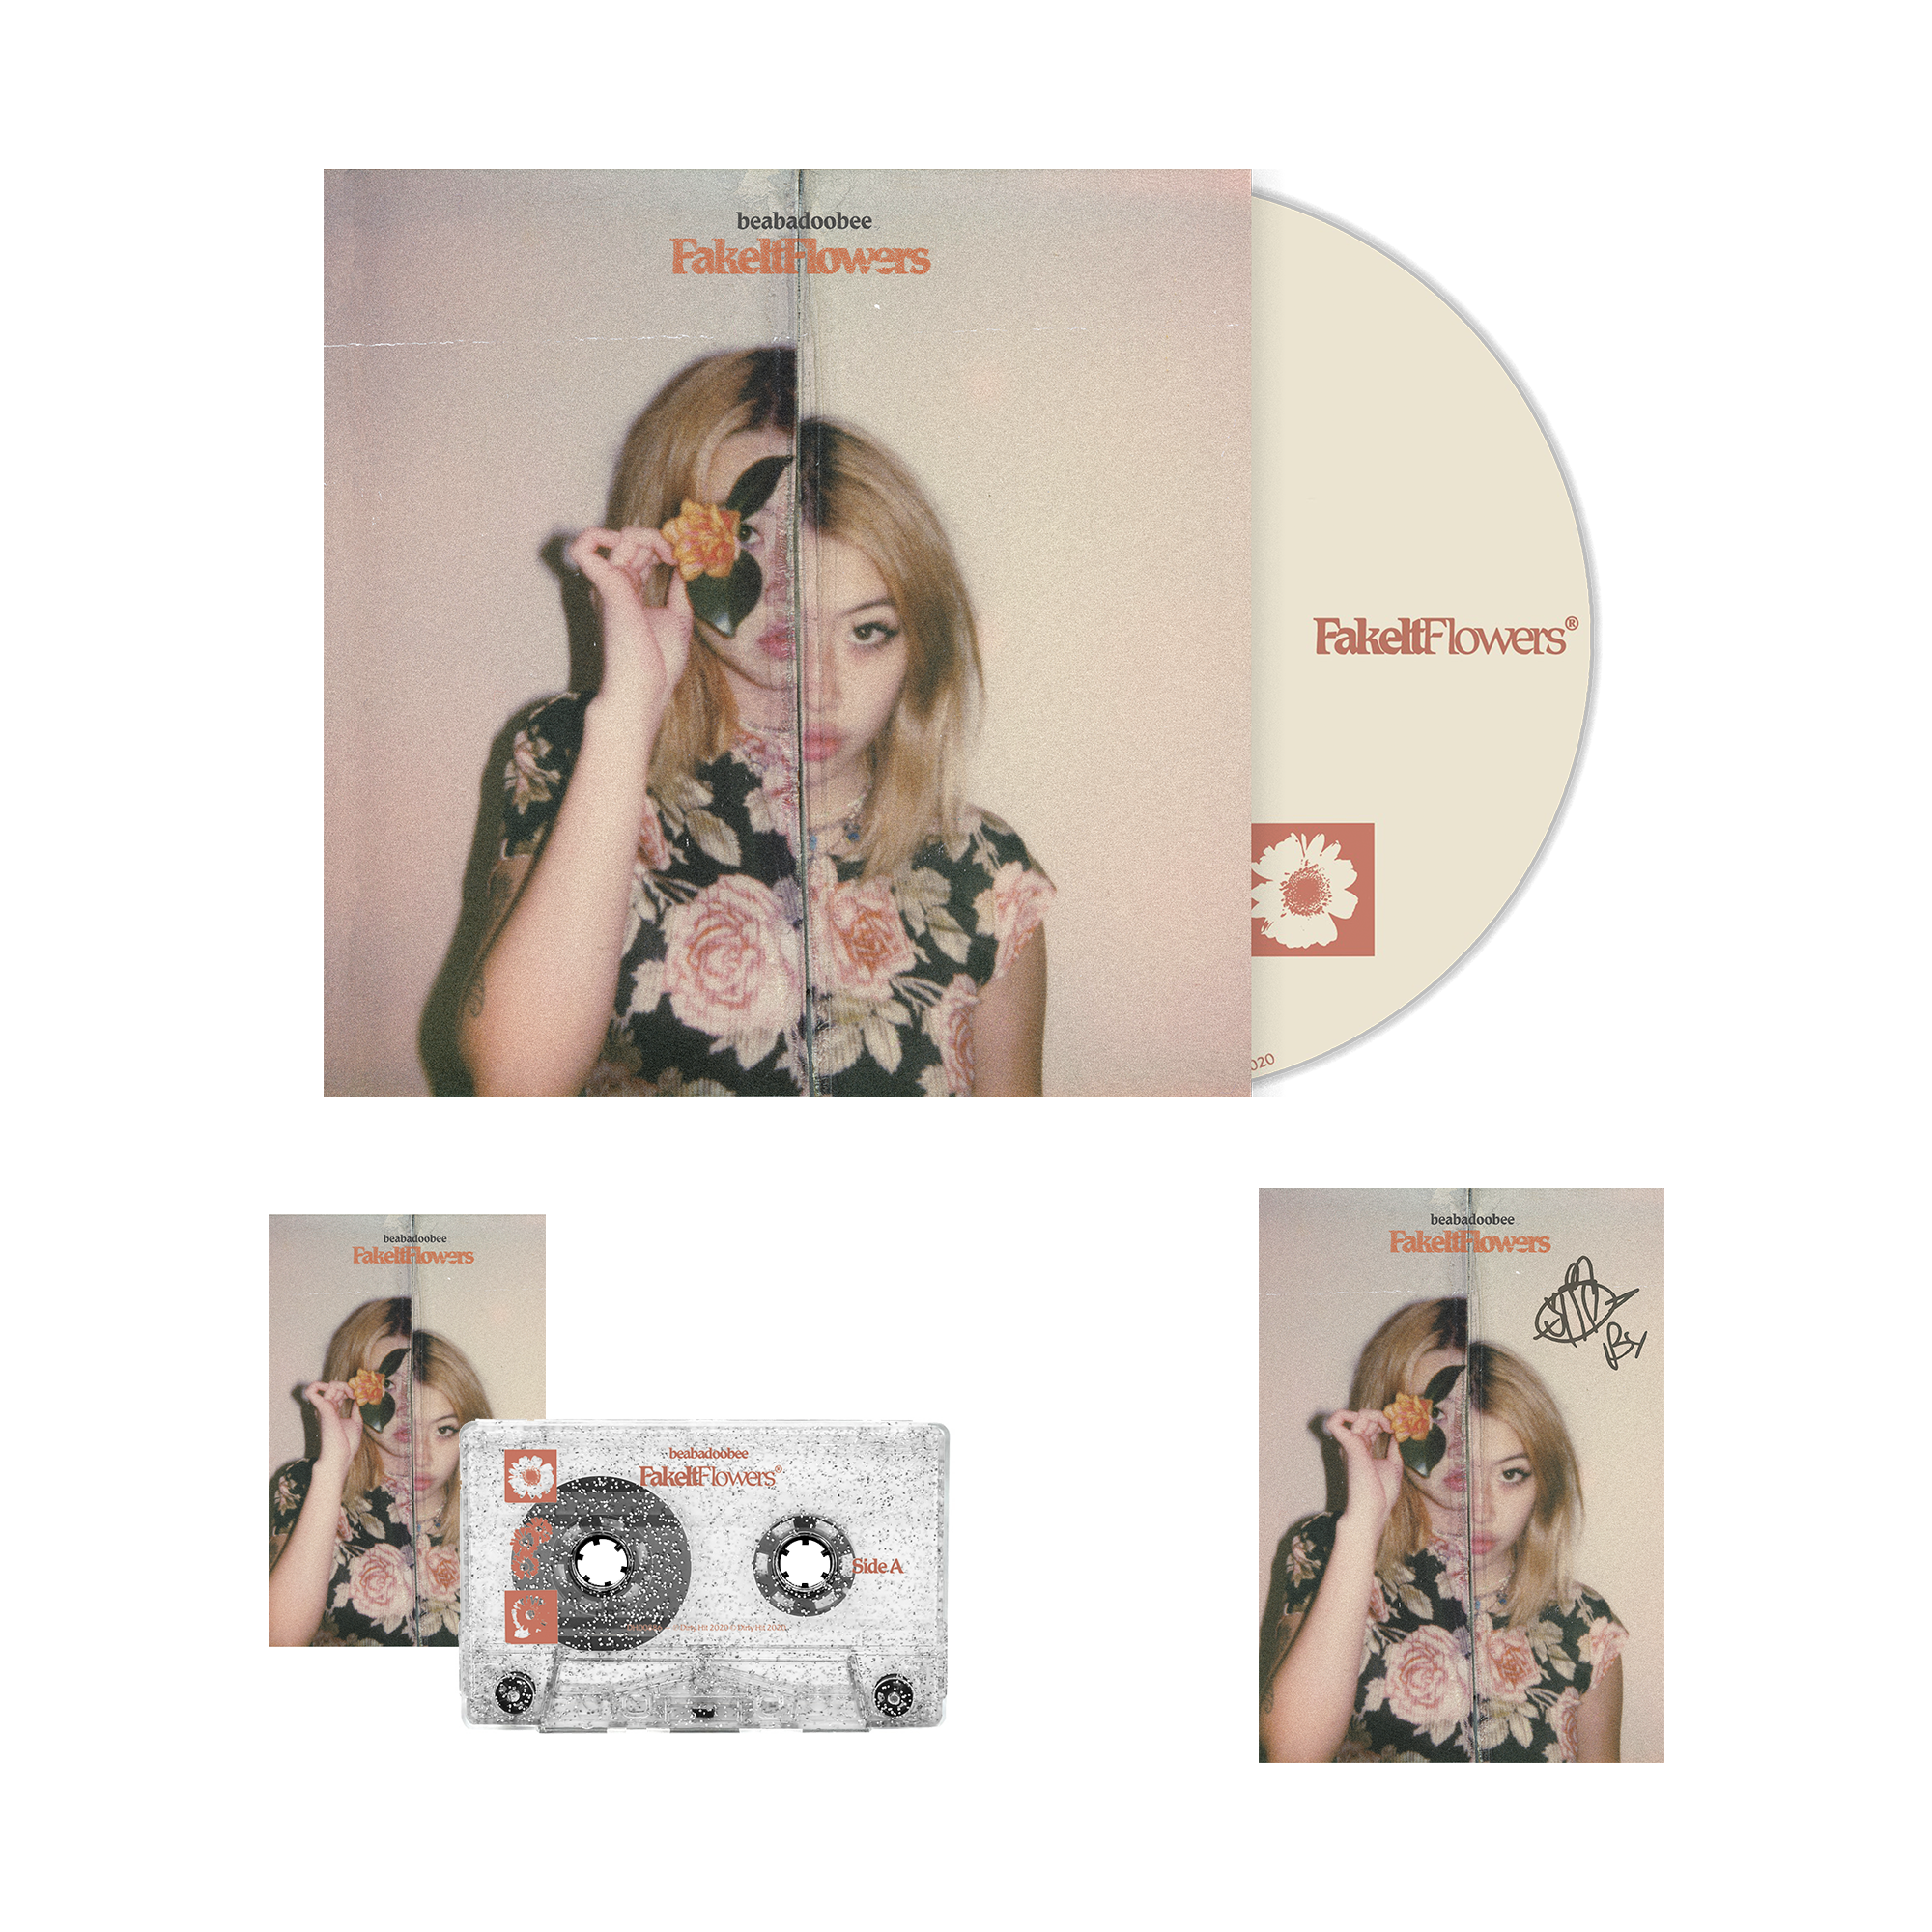 Beabadoobee: Fake It Flowers CD Bundle (Signed)